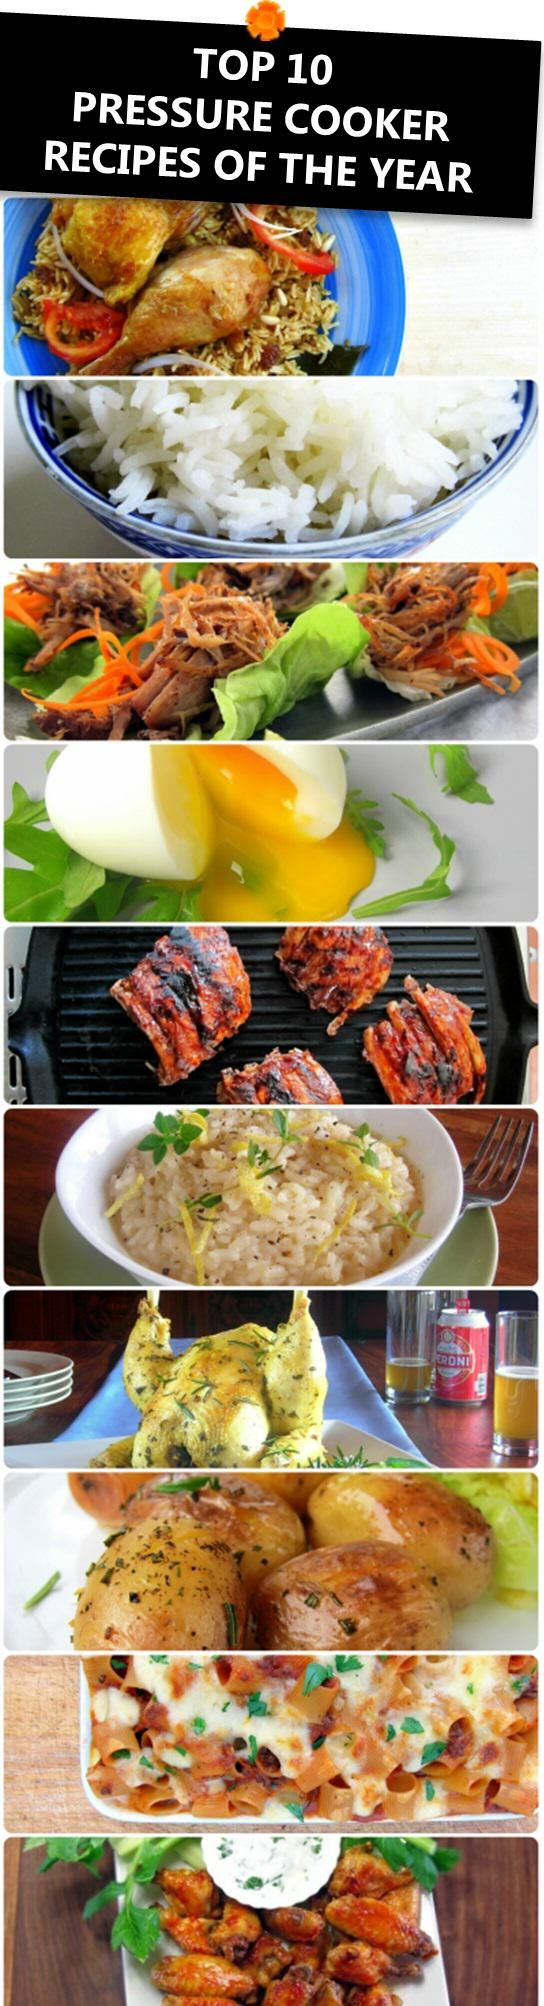 Top 10 Pressure Cooker Recipes of the Year!